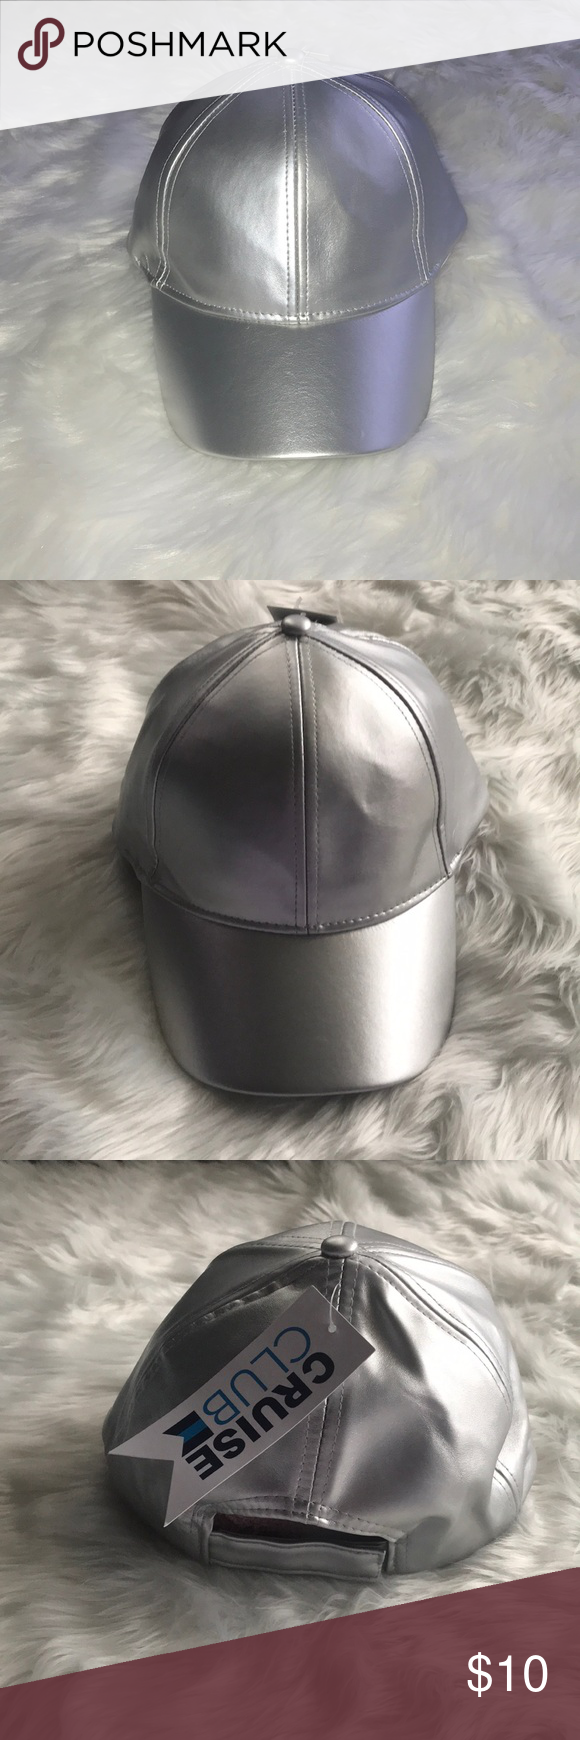 333df1aec8746 Cruise Club Metallic Snap Back Cap NWT Silver Hat 55% PU 45% Polyester  Adjustable velcro back cruise club Accessories Hats